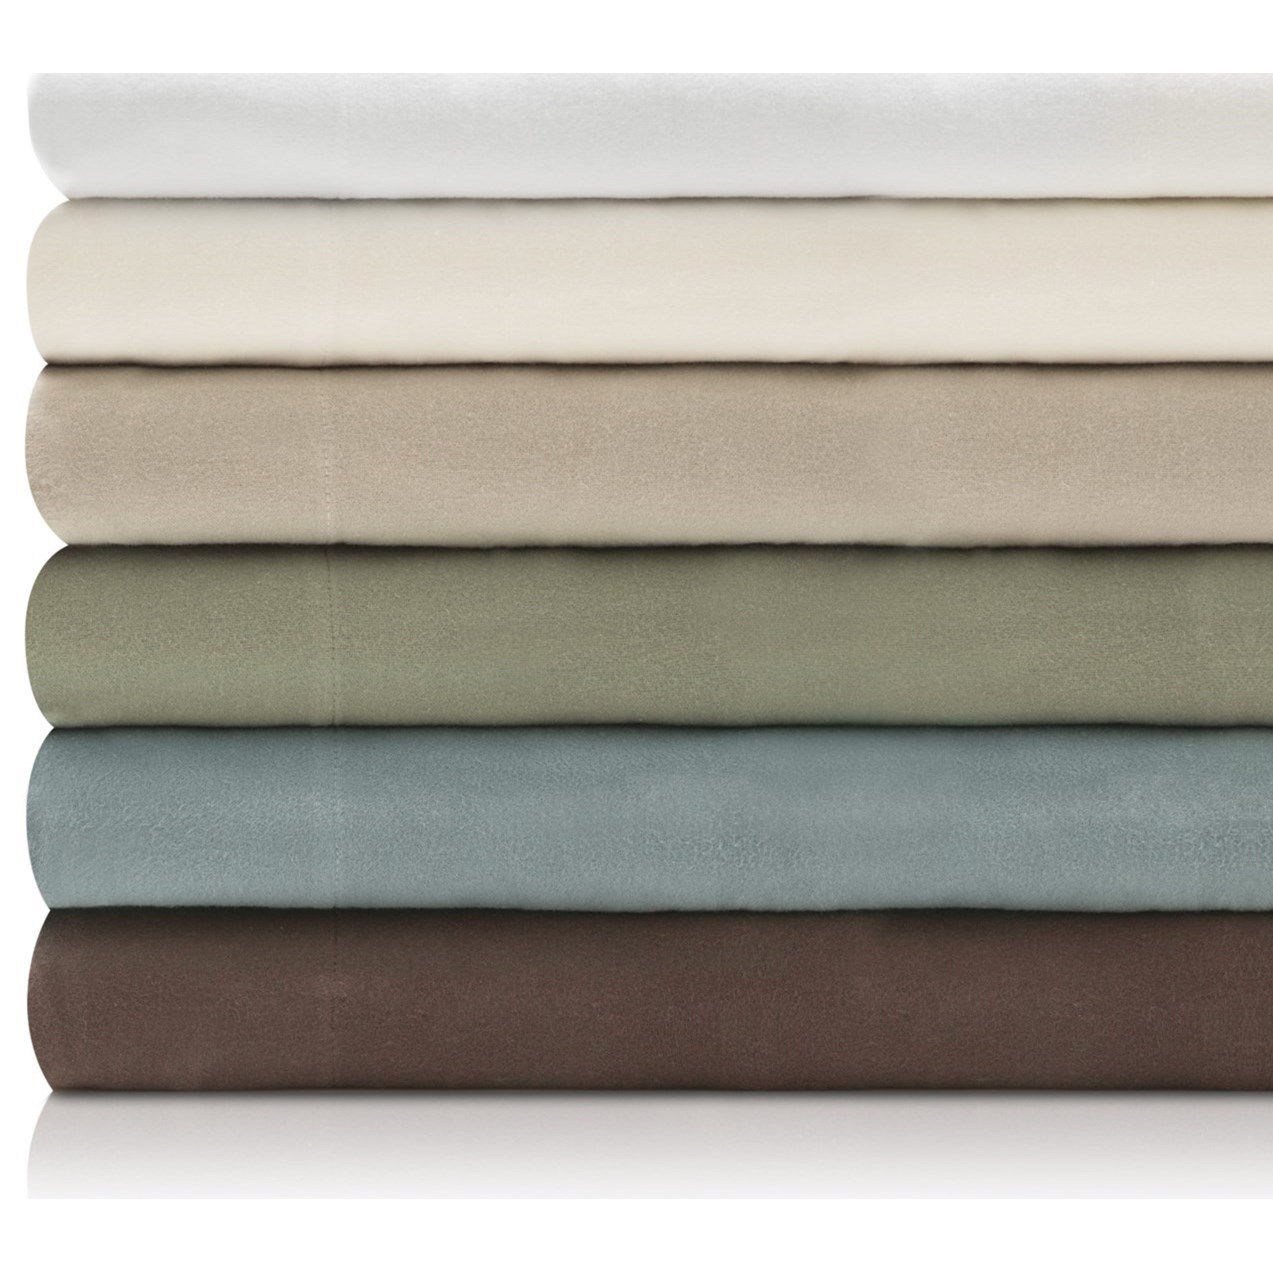 Malouf Portuguese Flannel Twin XL Woven™ Portuguese Flannel Sheet Set - Item Number: WO19TXWHFS